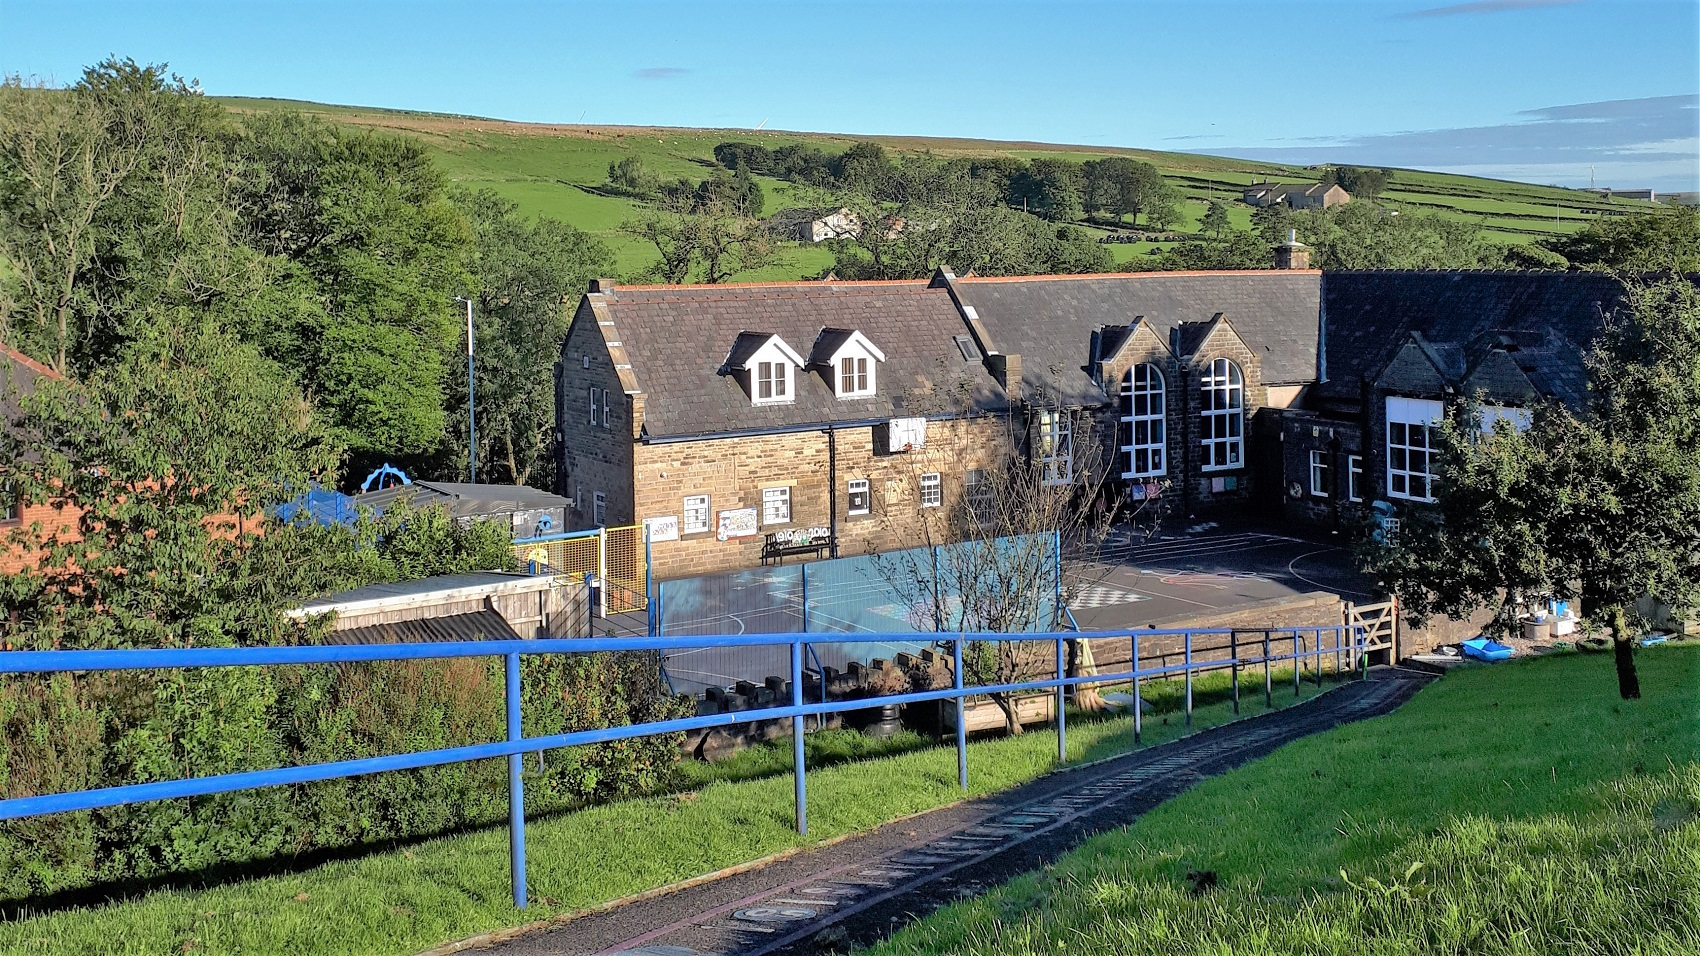 Northern County Primary School in Rossendale is pesticide-free